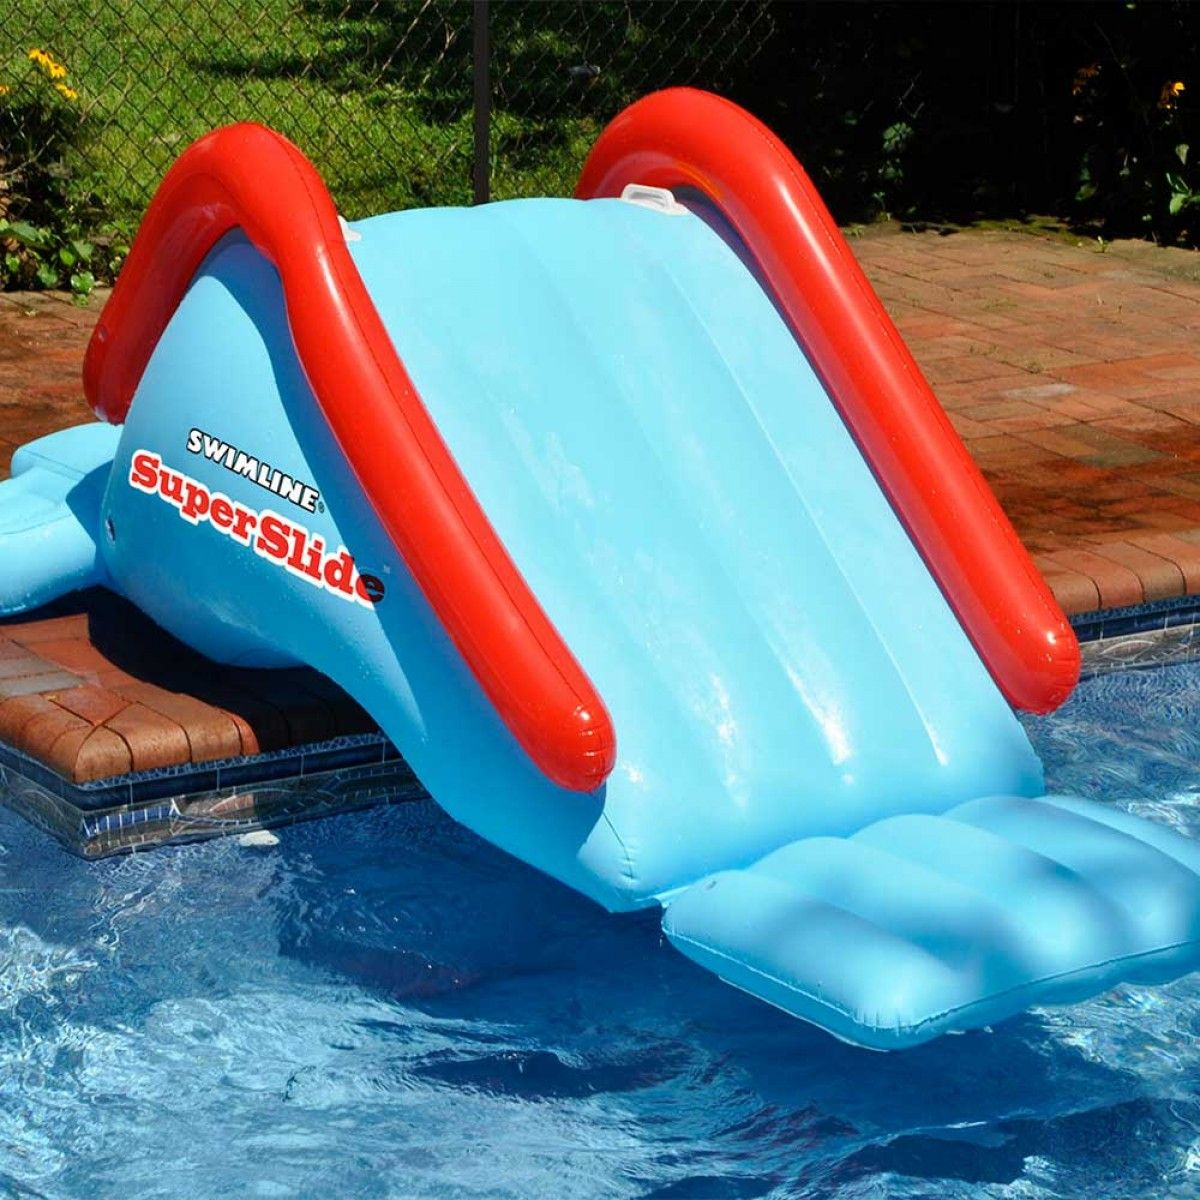 swimline super slide inflatable water slide - Inflatable Pool Slide